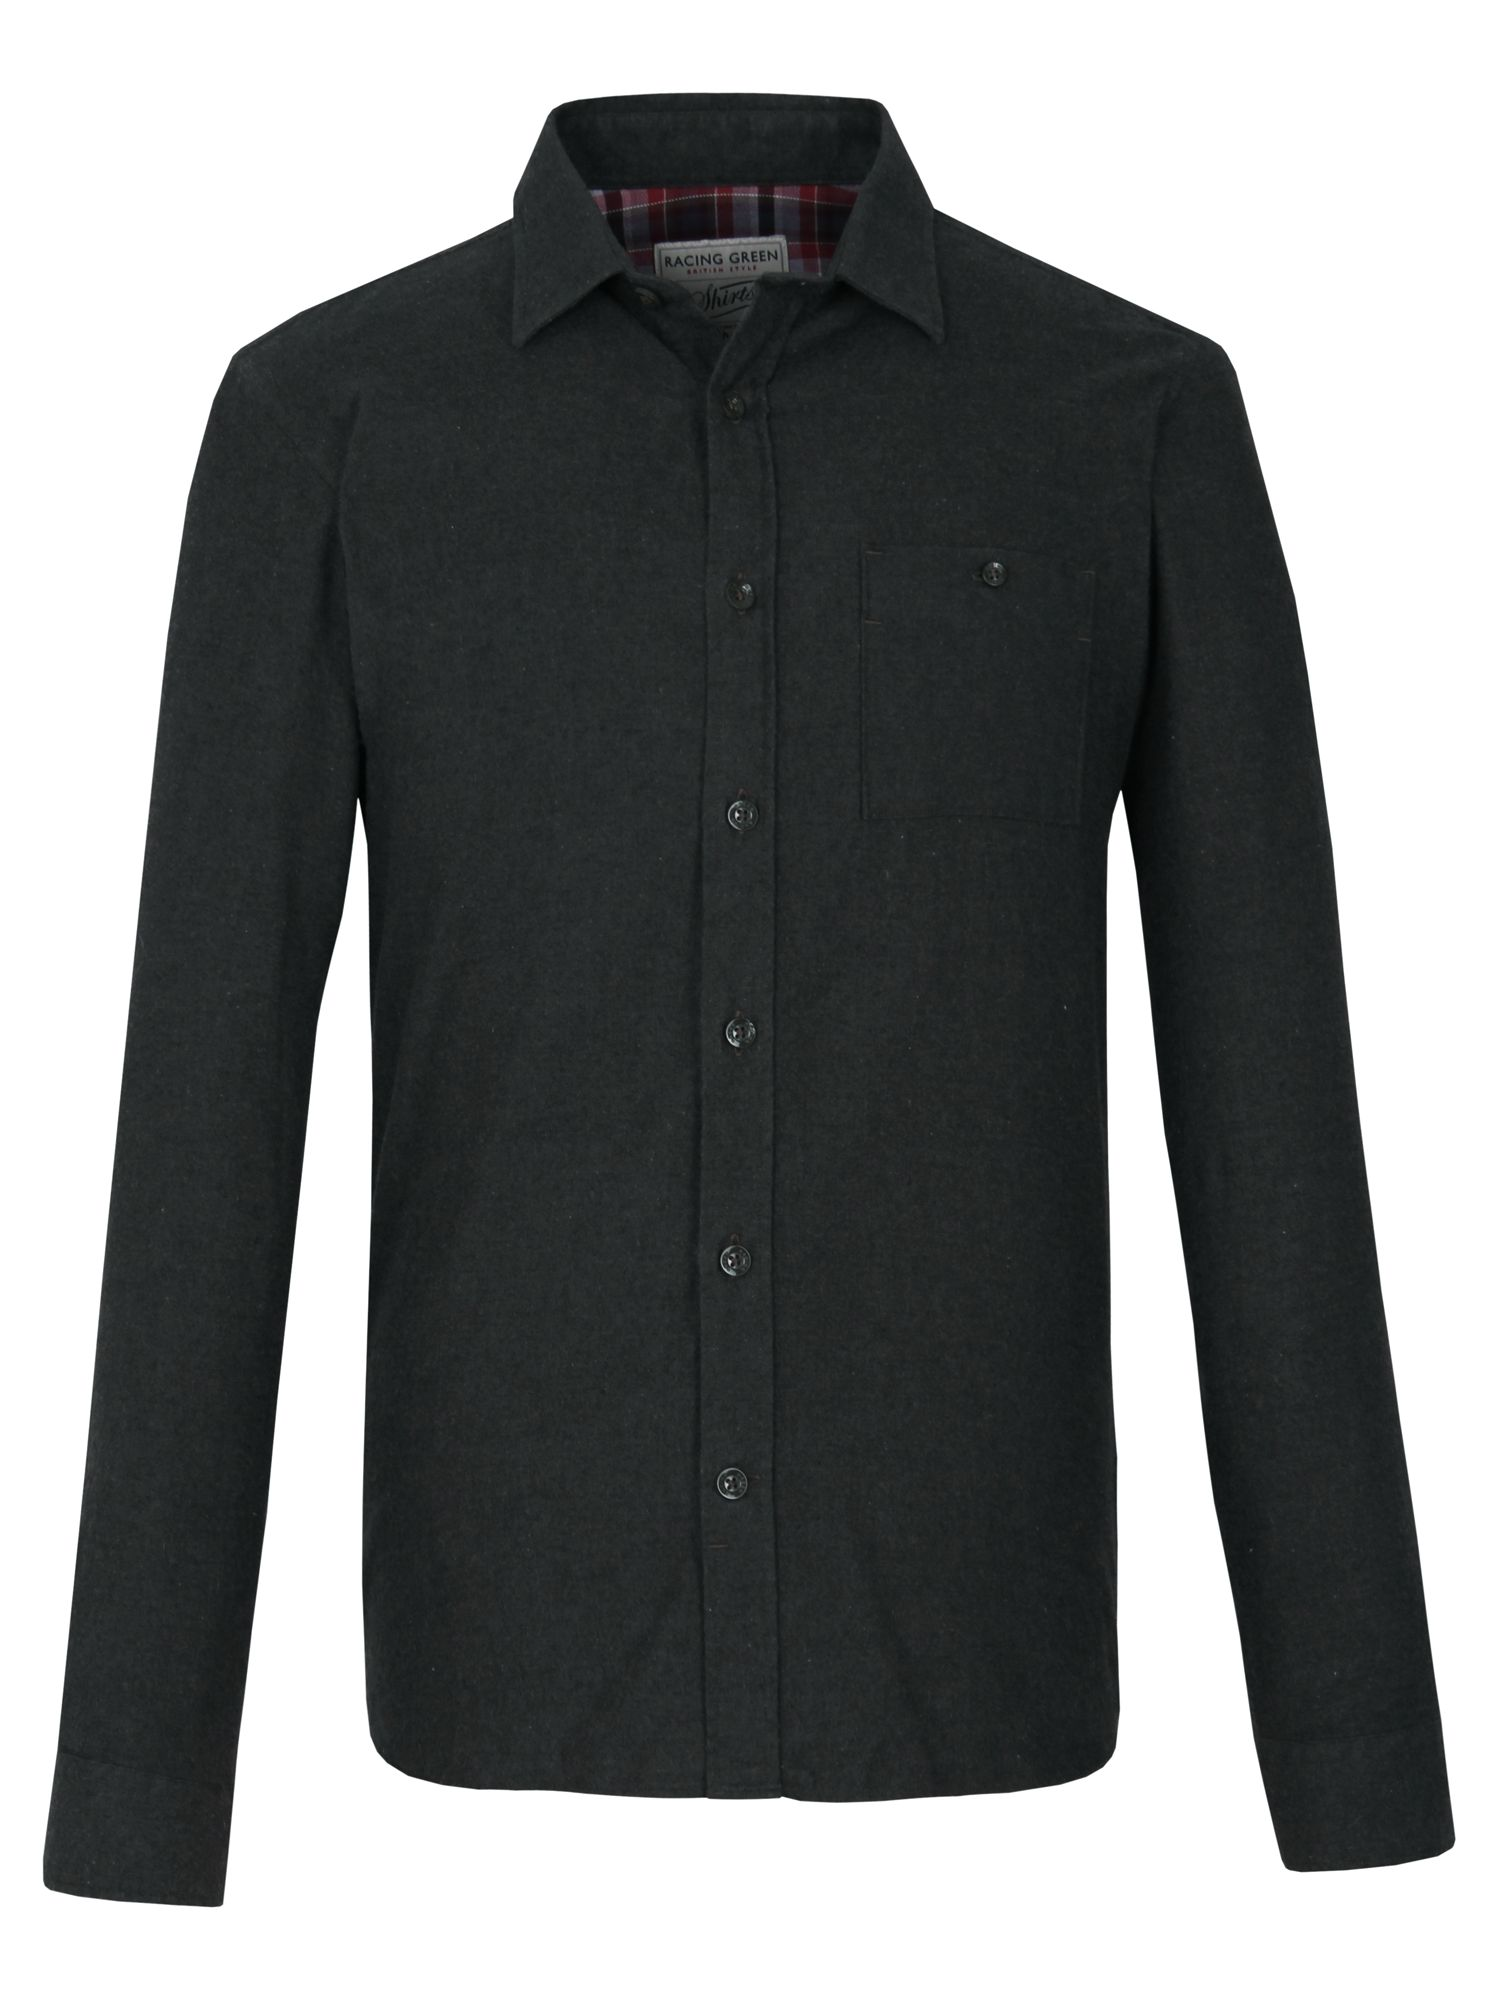 Racing Green Long Sleeve Brushed Twill Shirt In Black For